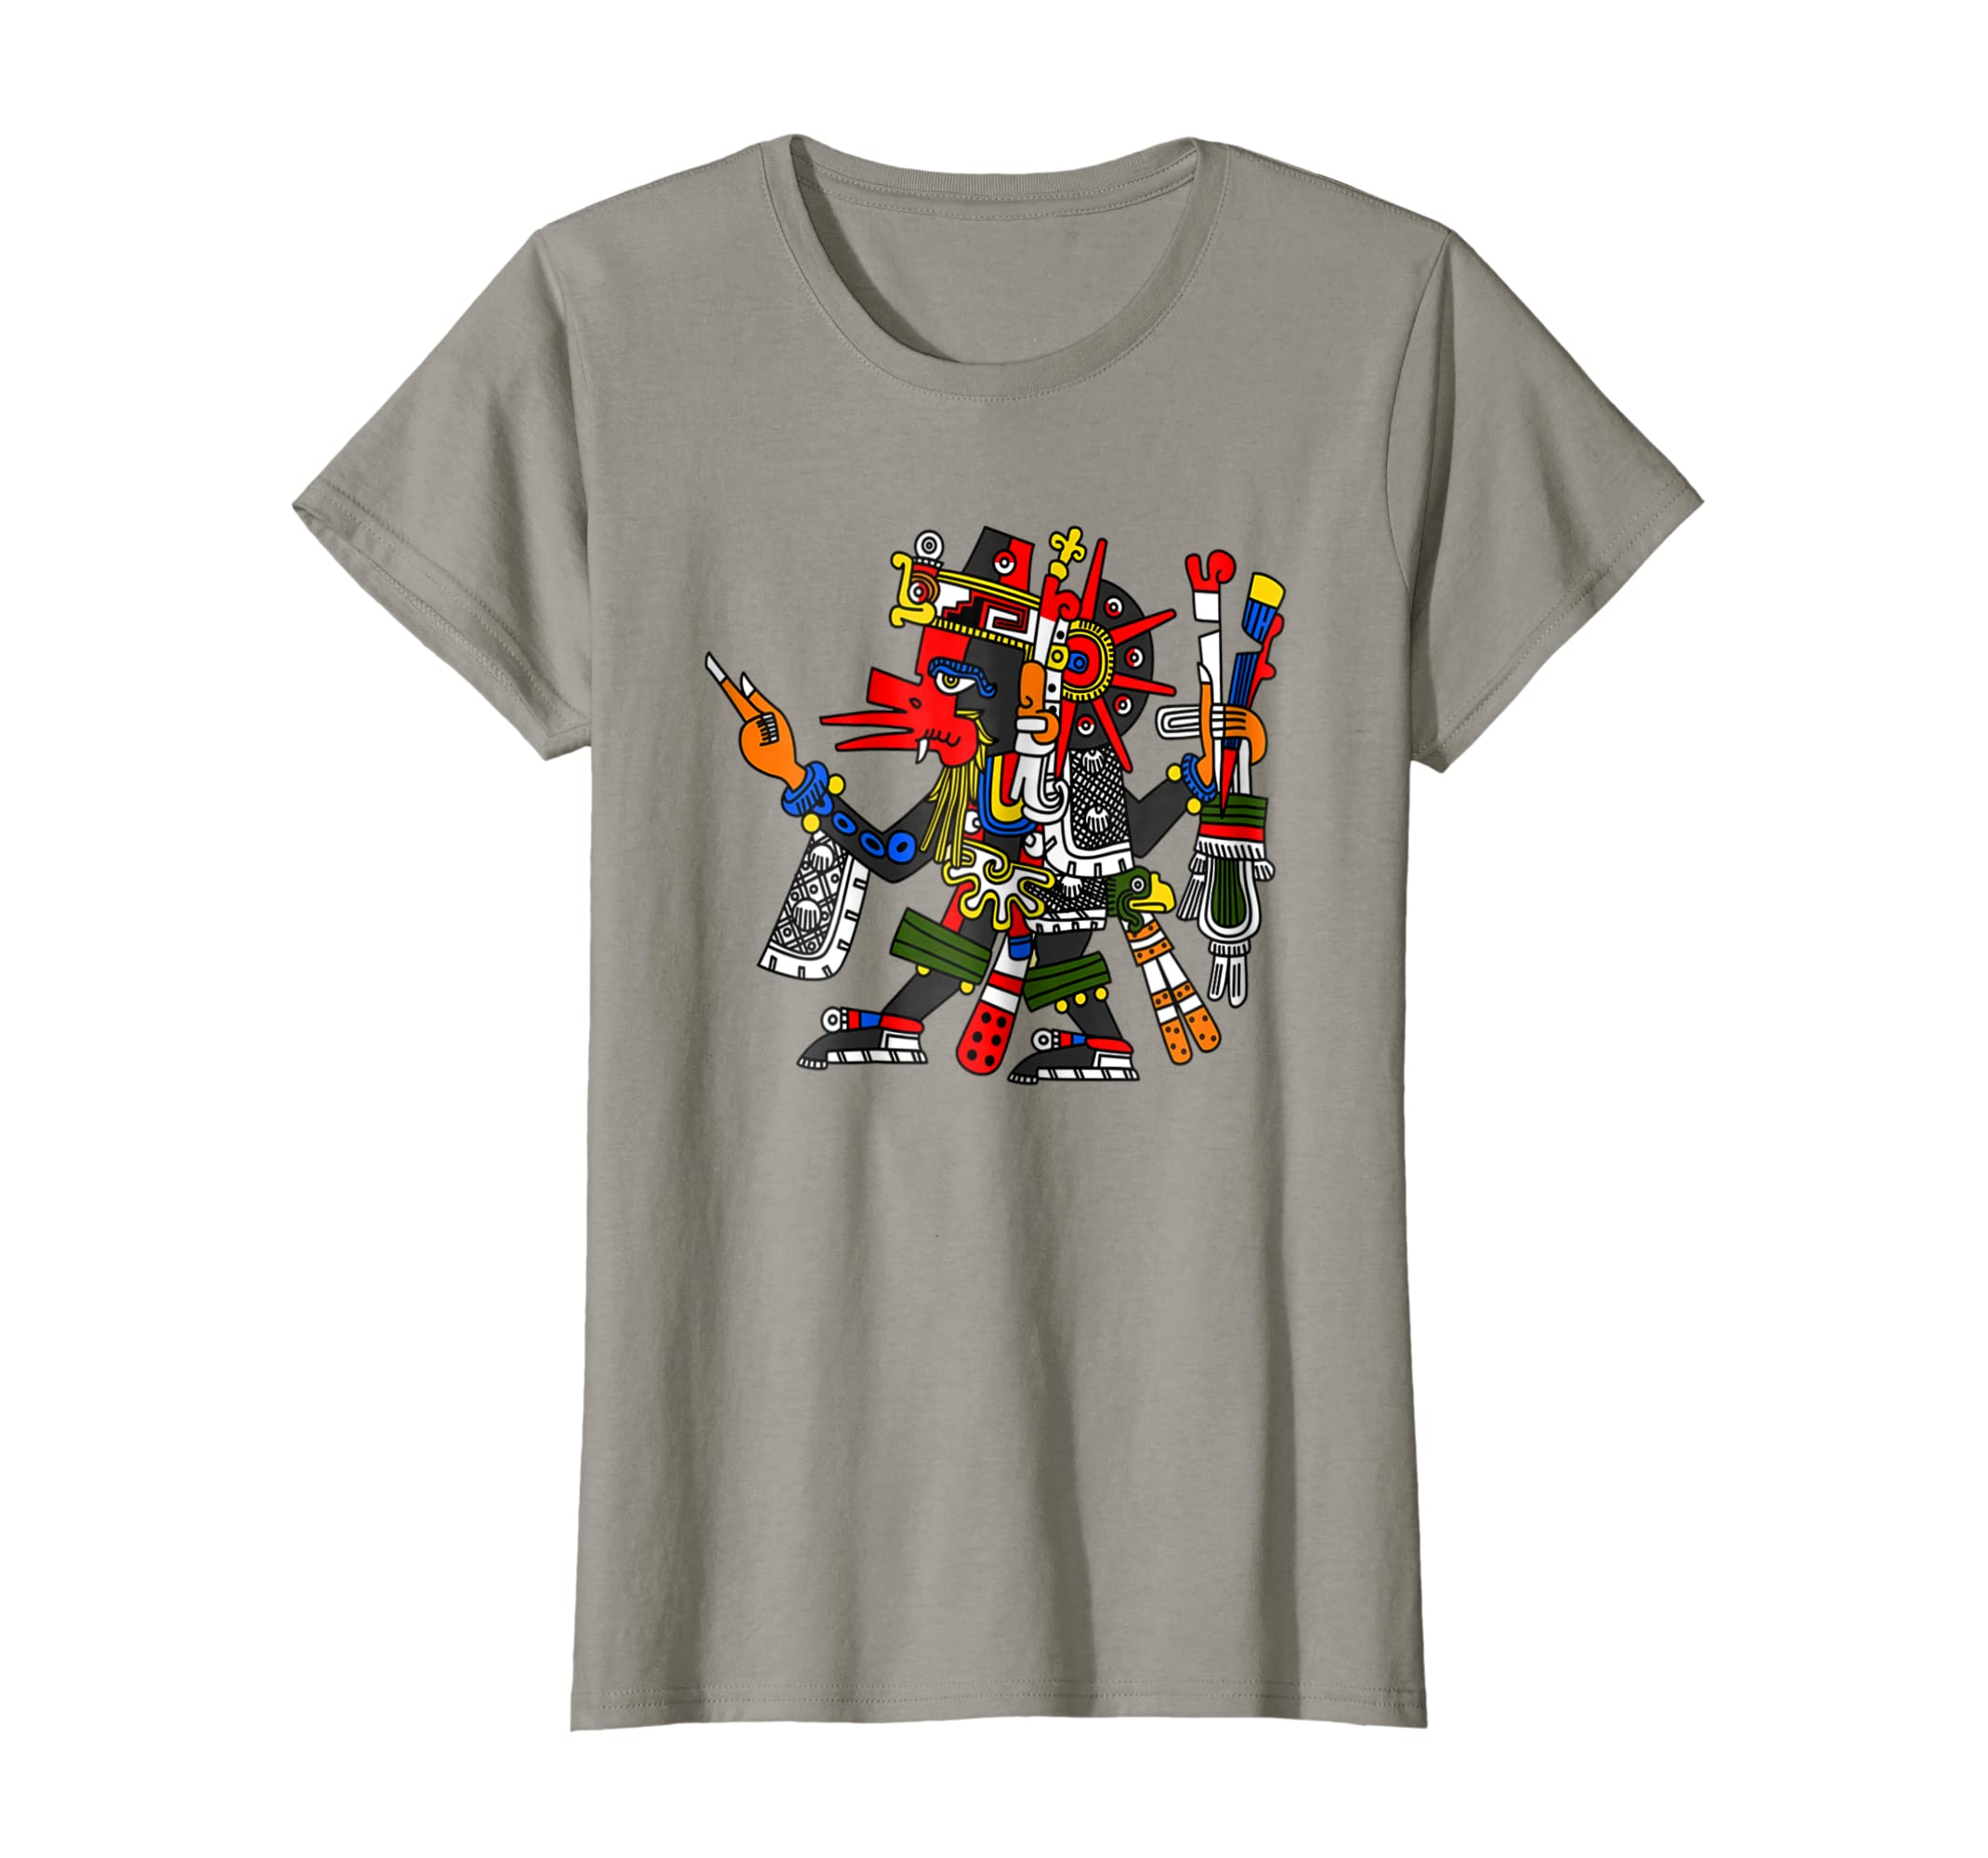 02662c88139195 Amazon.com  Quetzalcoatl T-Shirt Aztec God Deity Feathered Serpent Tee   Clothing